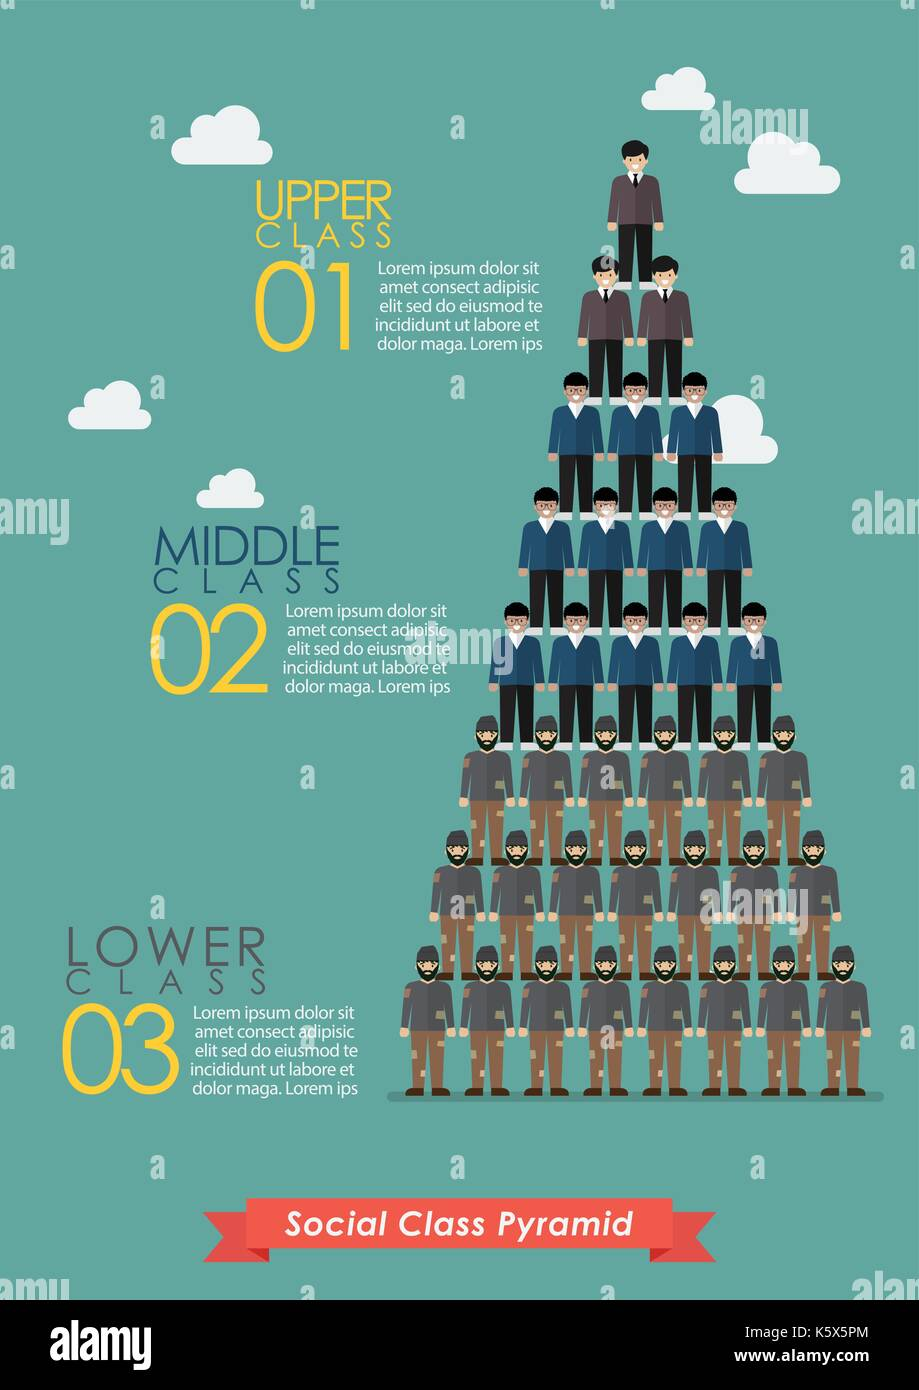 Pyramid of social class infographic. Vector illustration - Stock Image